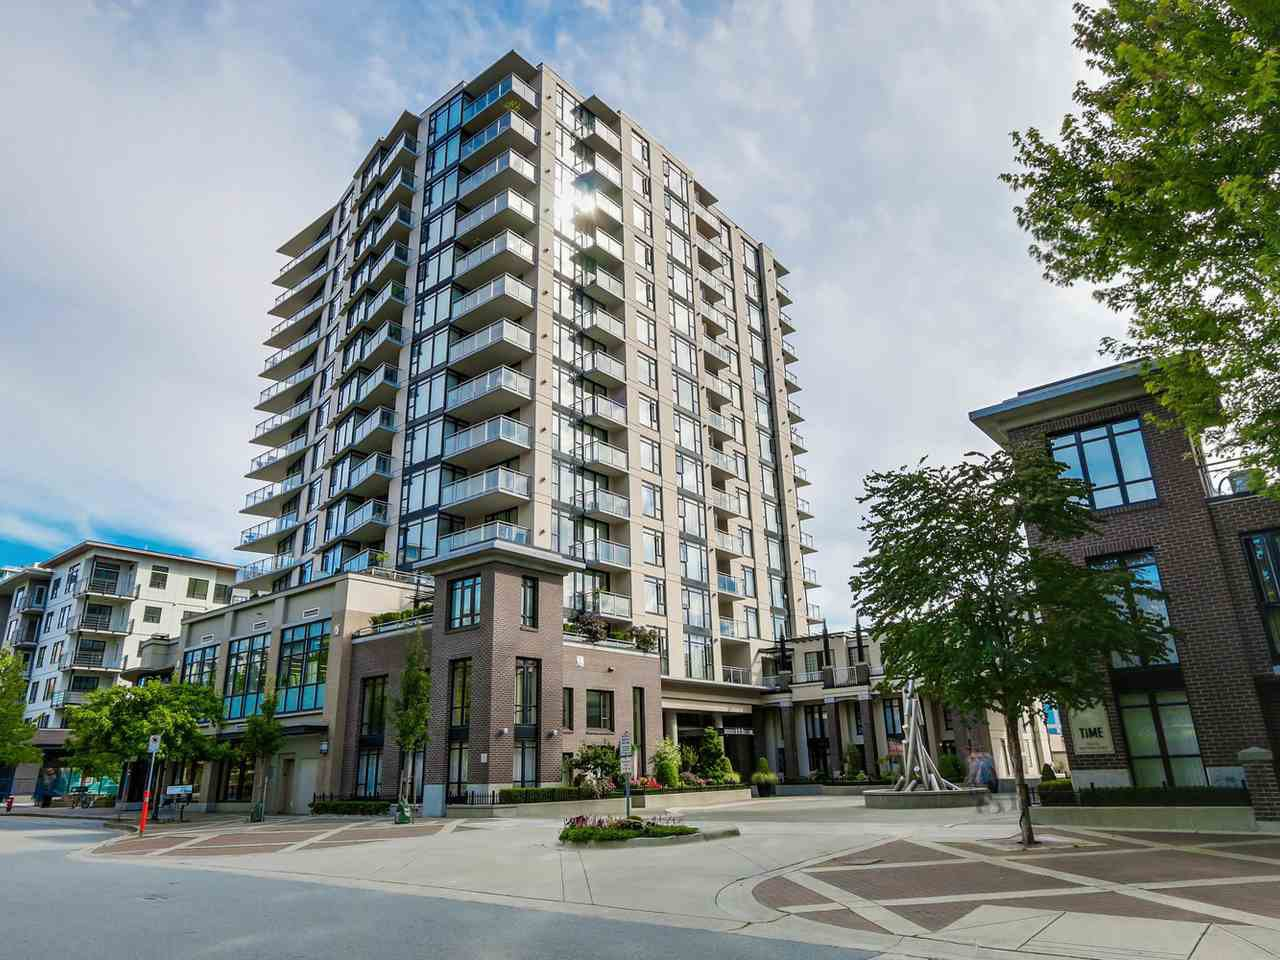 """Main Photo: 808 155 W 1ST Street in North Vancouver: Lower Lonsdale Condo for sale in """"TIME"""" : MLS®# R2094578"""